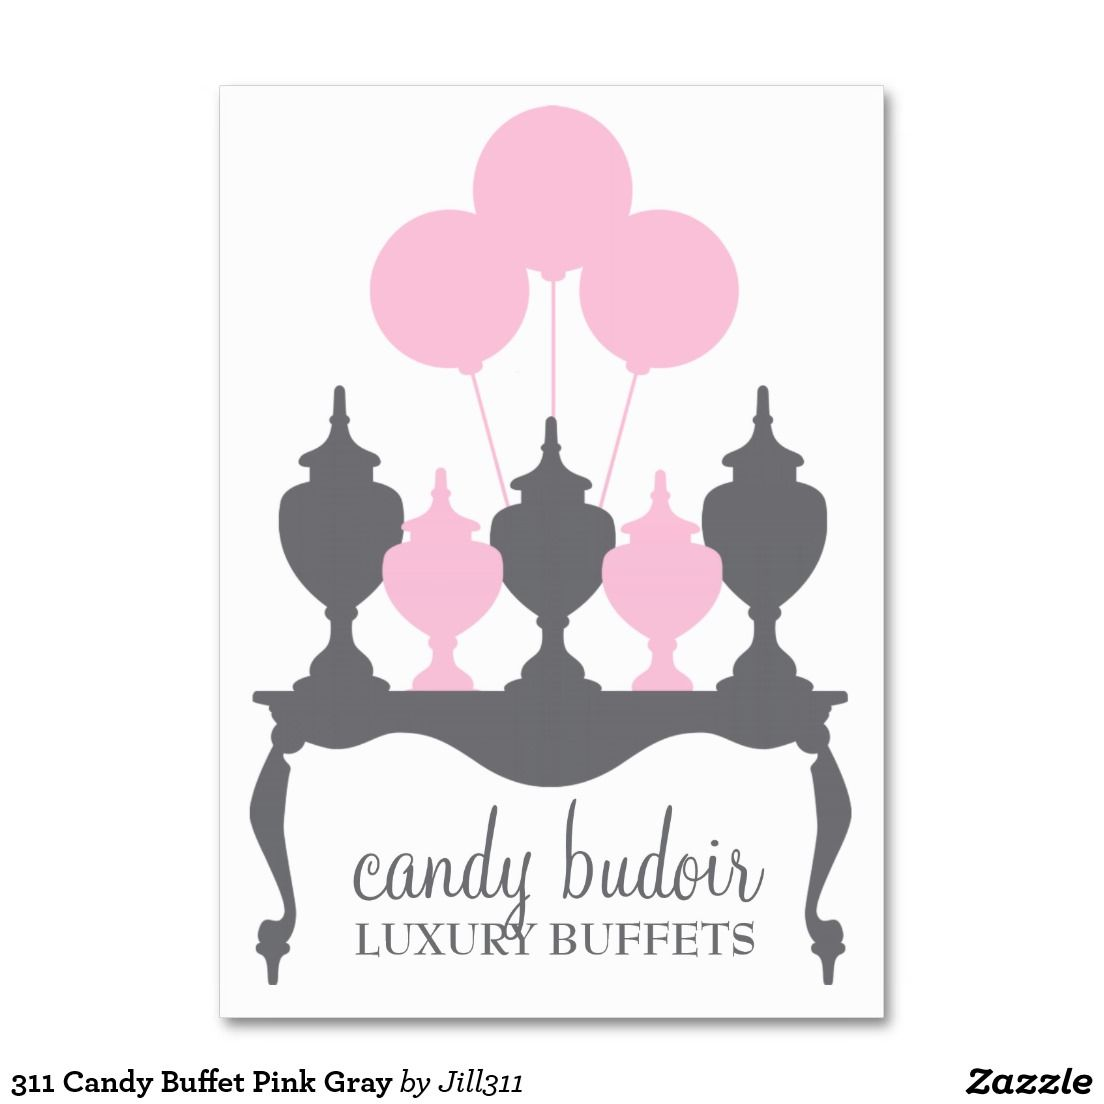 311 candy buffet pink gray business card business cards business 311 candy buffet pink gray large business cards pack of 100 colourmoves